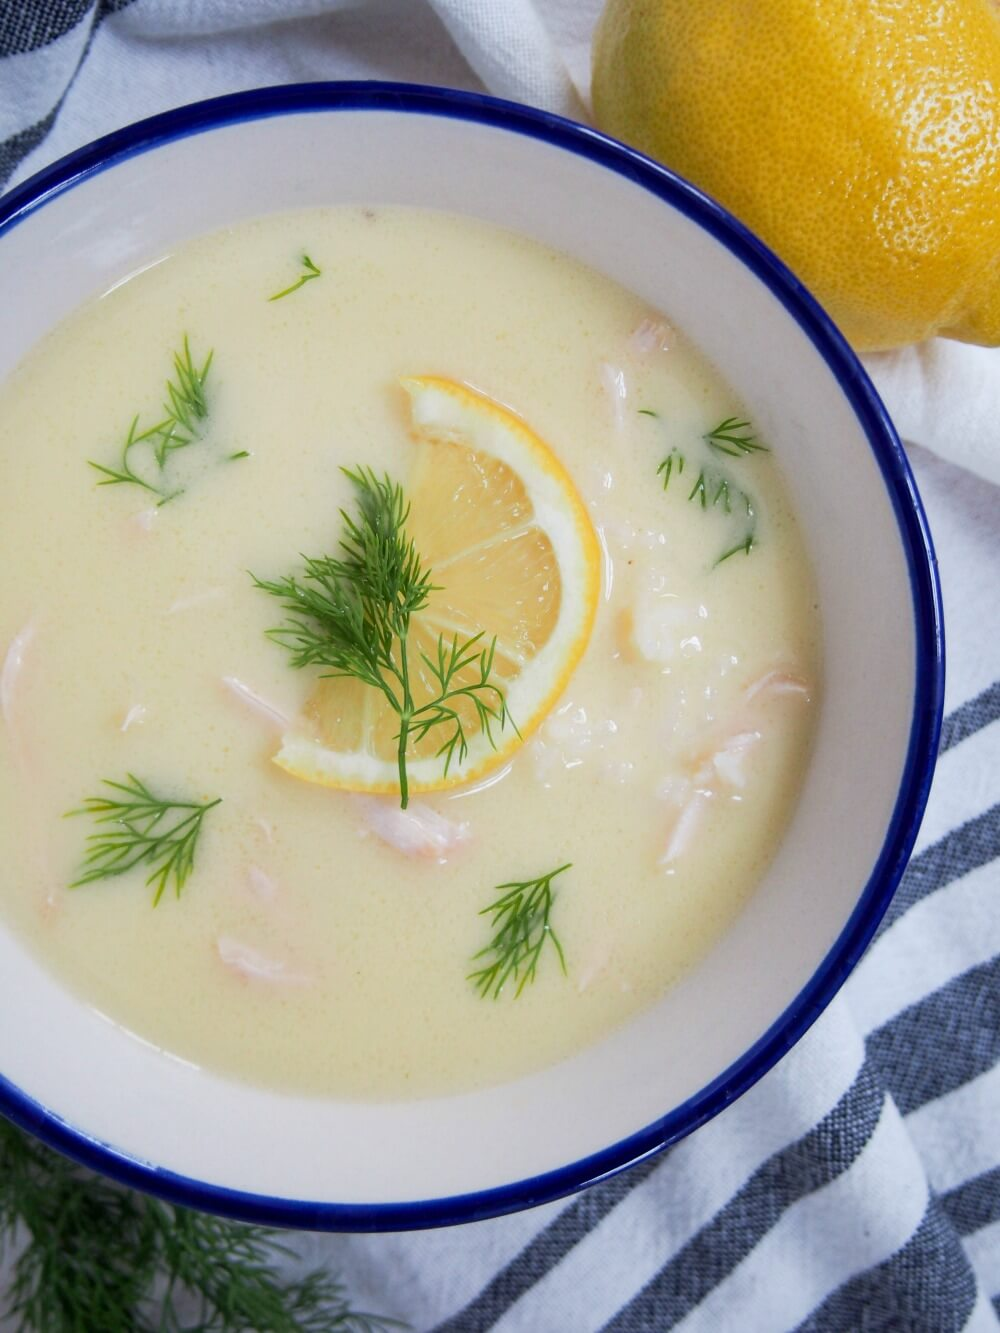 Avgolemono soup - Greek chicken and rice/orzo soup with lemon